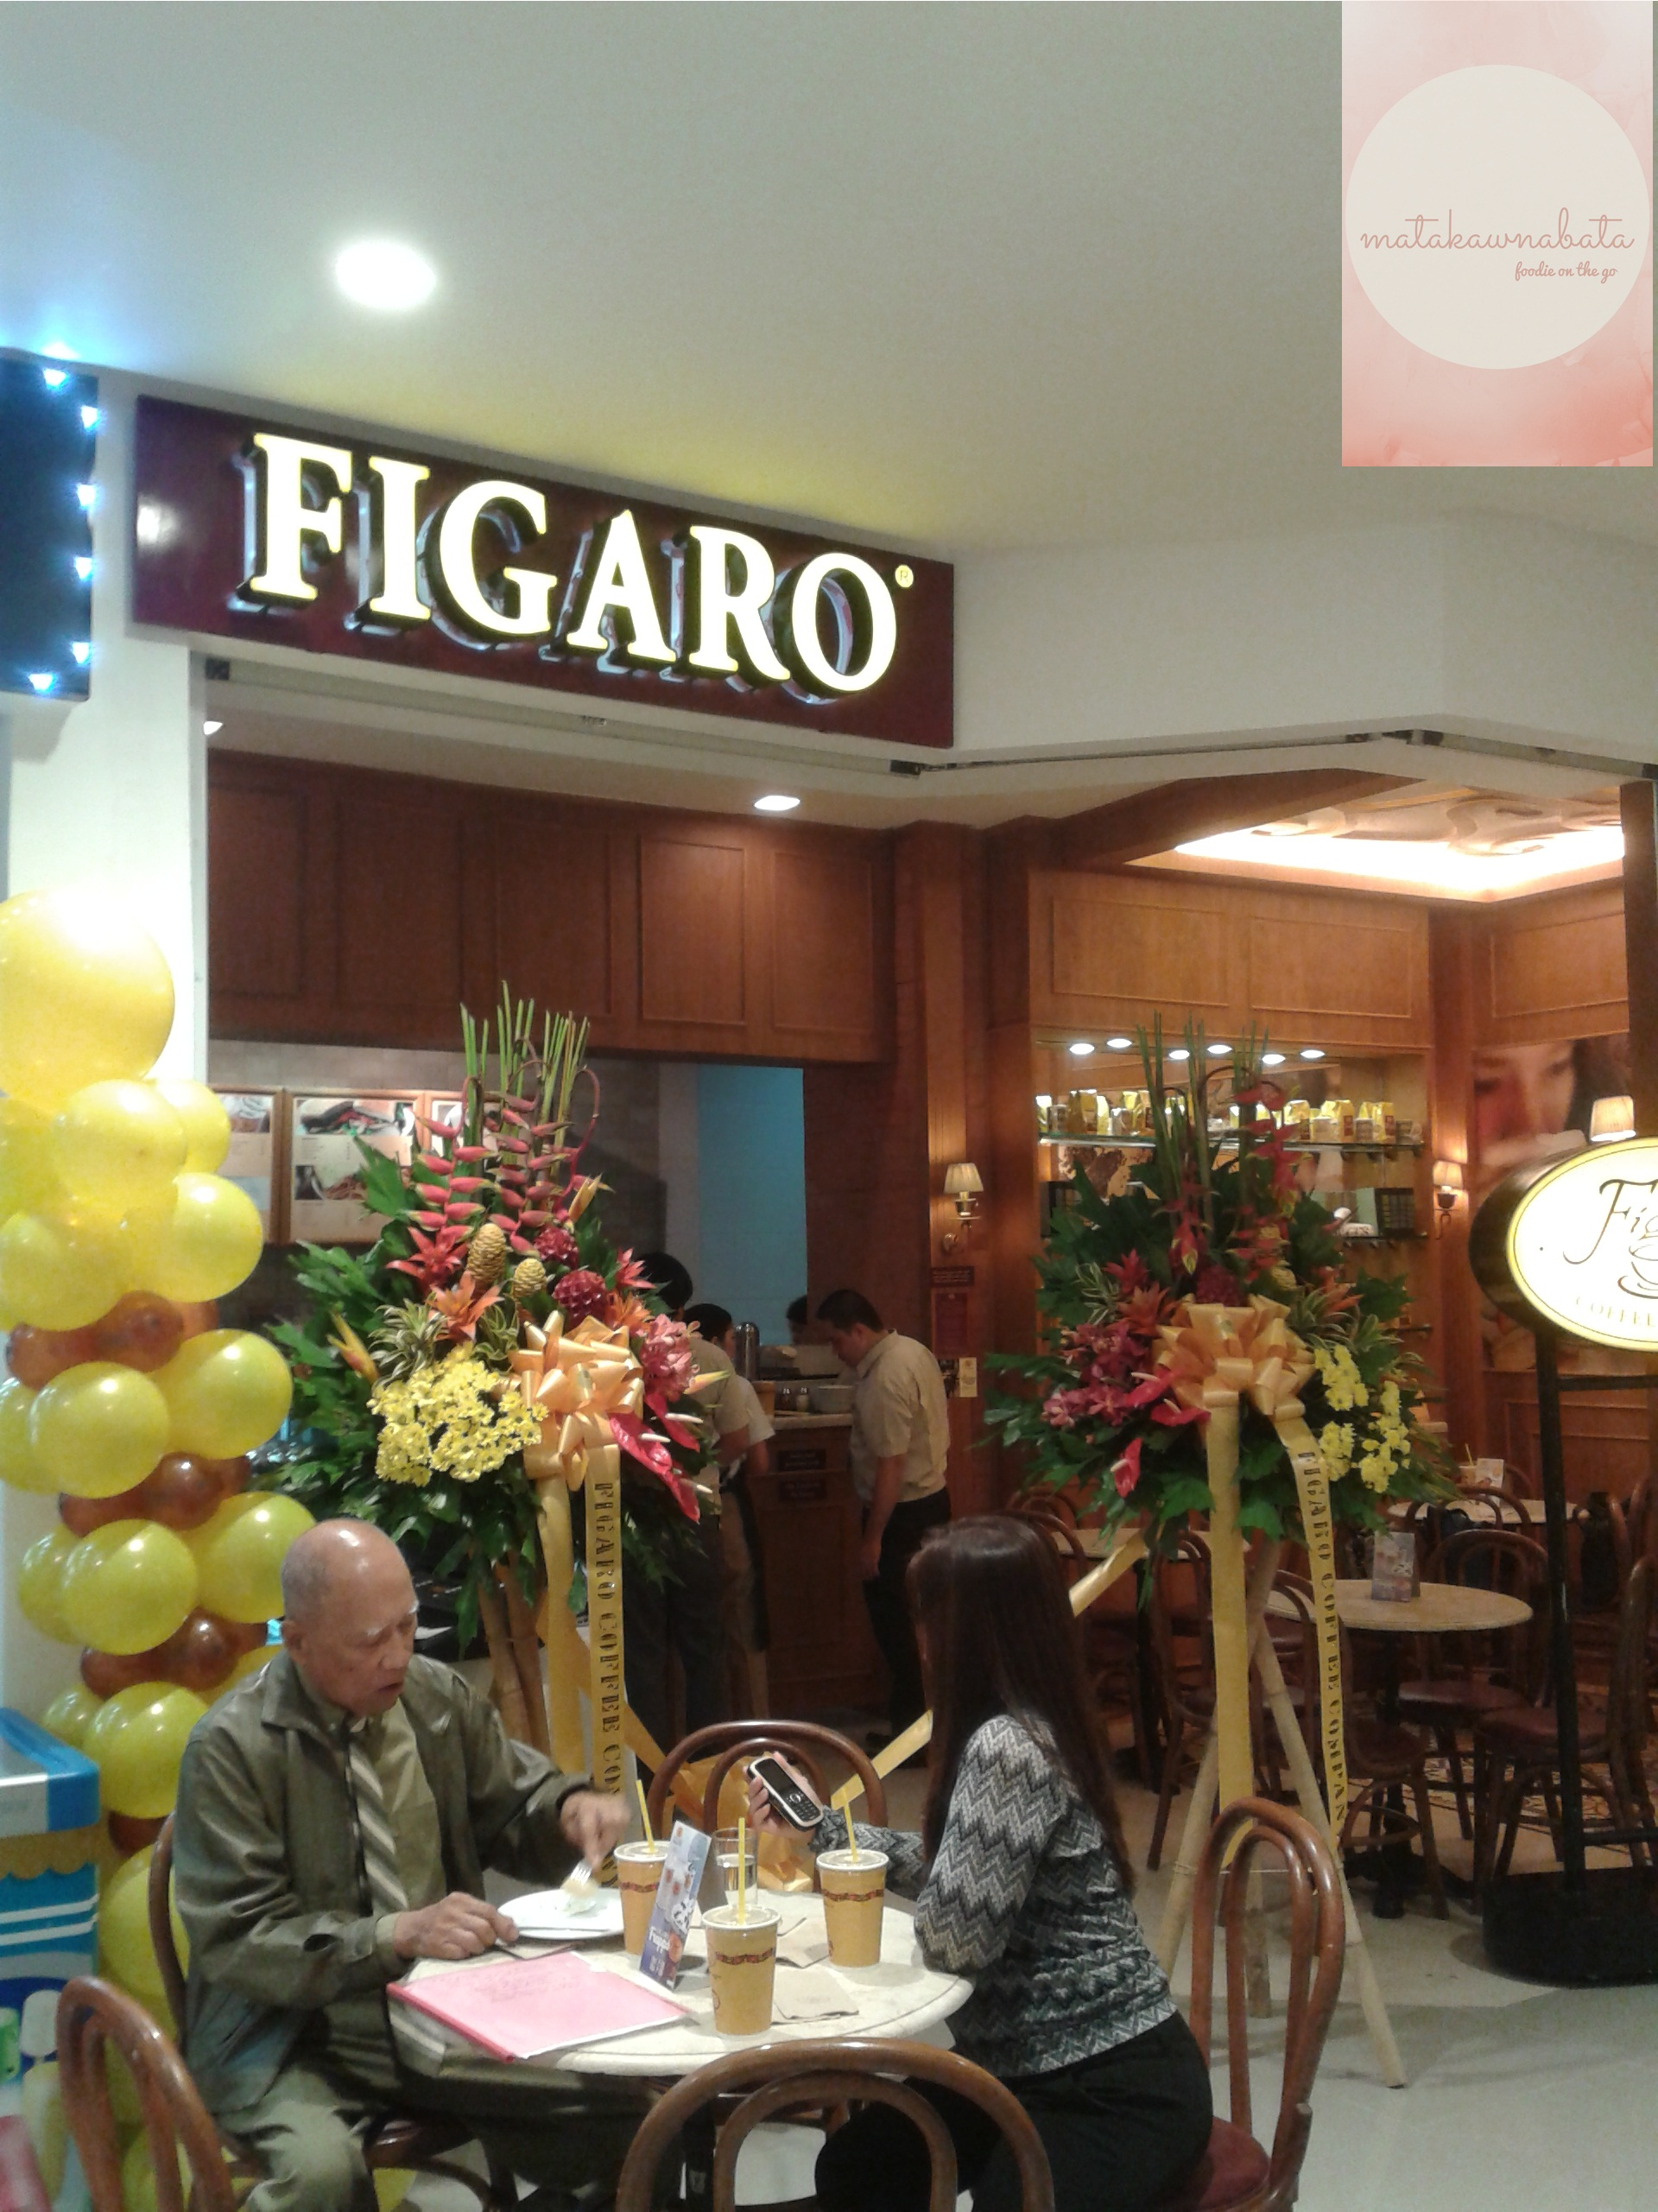 Figaro opens its Ayala Fairview Terraces branch